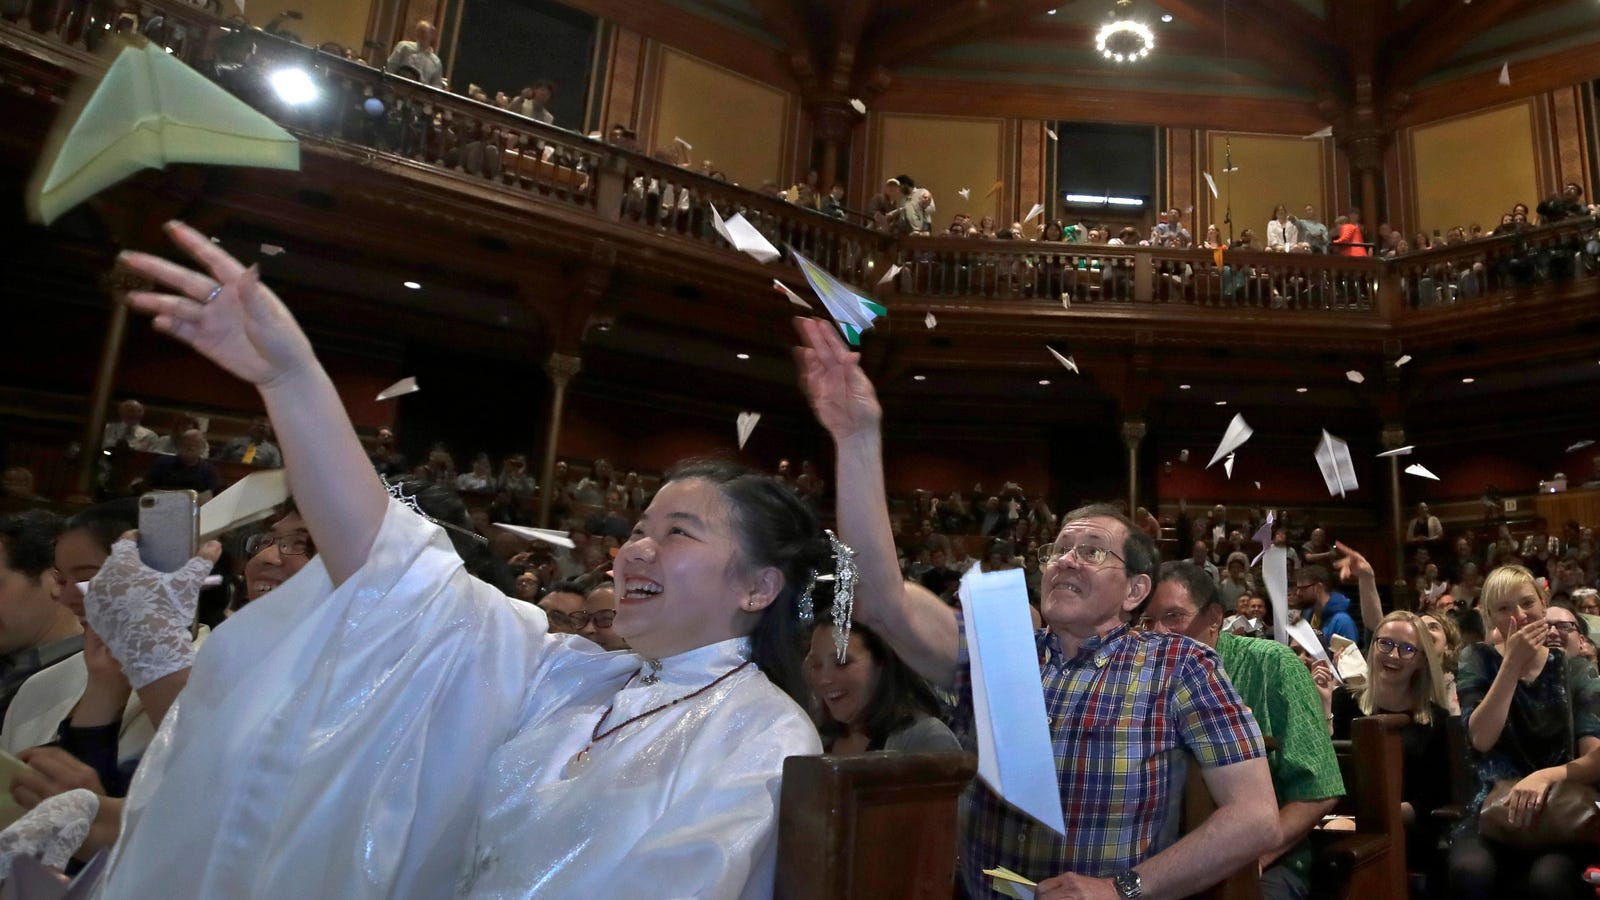 Magnetic Roaches, Cubed Poop, and Dirty Money: The Wonderful Winners of the 2019 Ig Nobel Prize